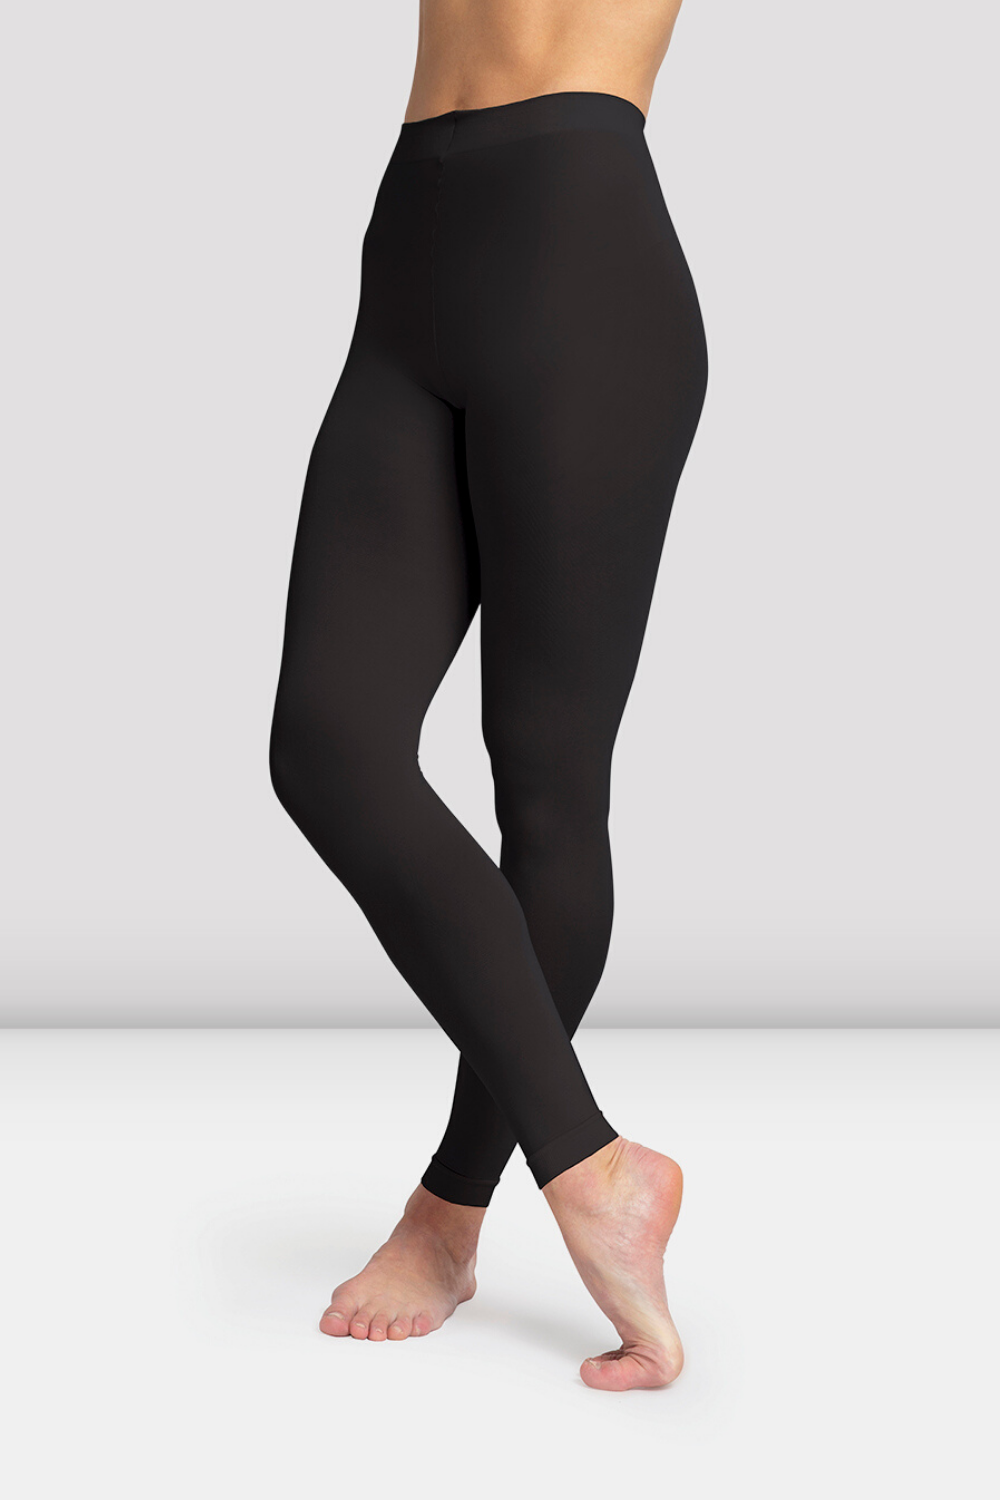 Ladies Contoursoft Footless Tights - BLOCH US